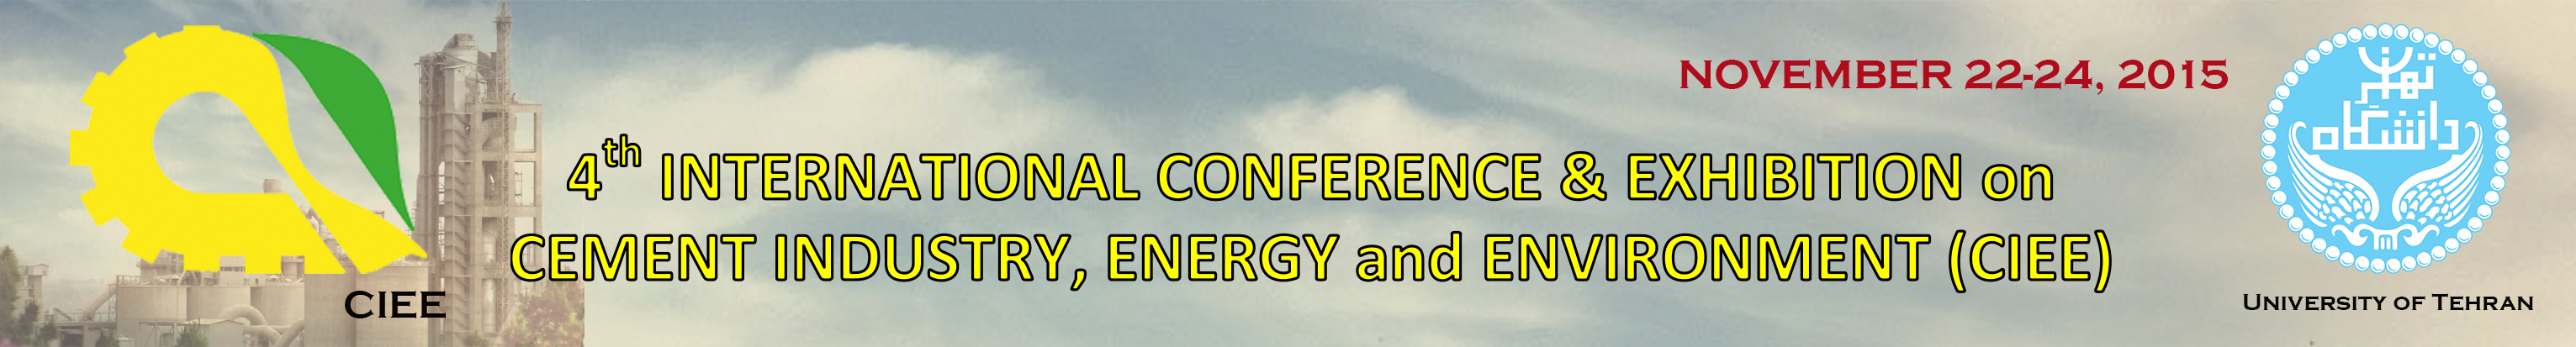 4rd INTERNATIONAL CONFERENCE and EXHIBITION on CEMENT INDUSTRY, ENERGY and ENVIRONMENT (CIEE)